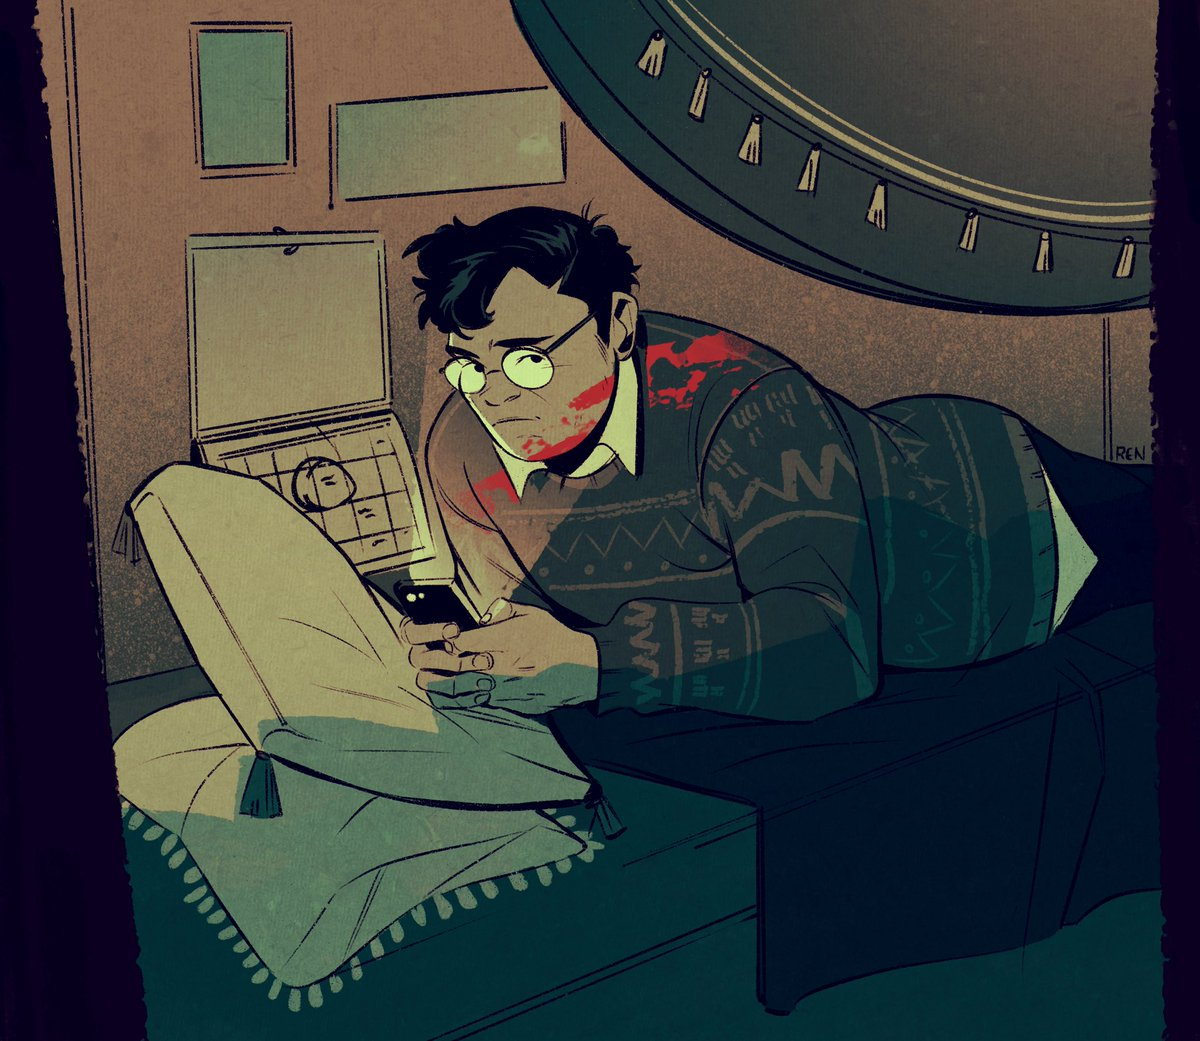 Even vampire slayers have to take a break to check their notifications sometimes #ShadowsFX